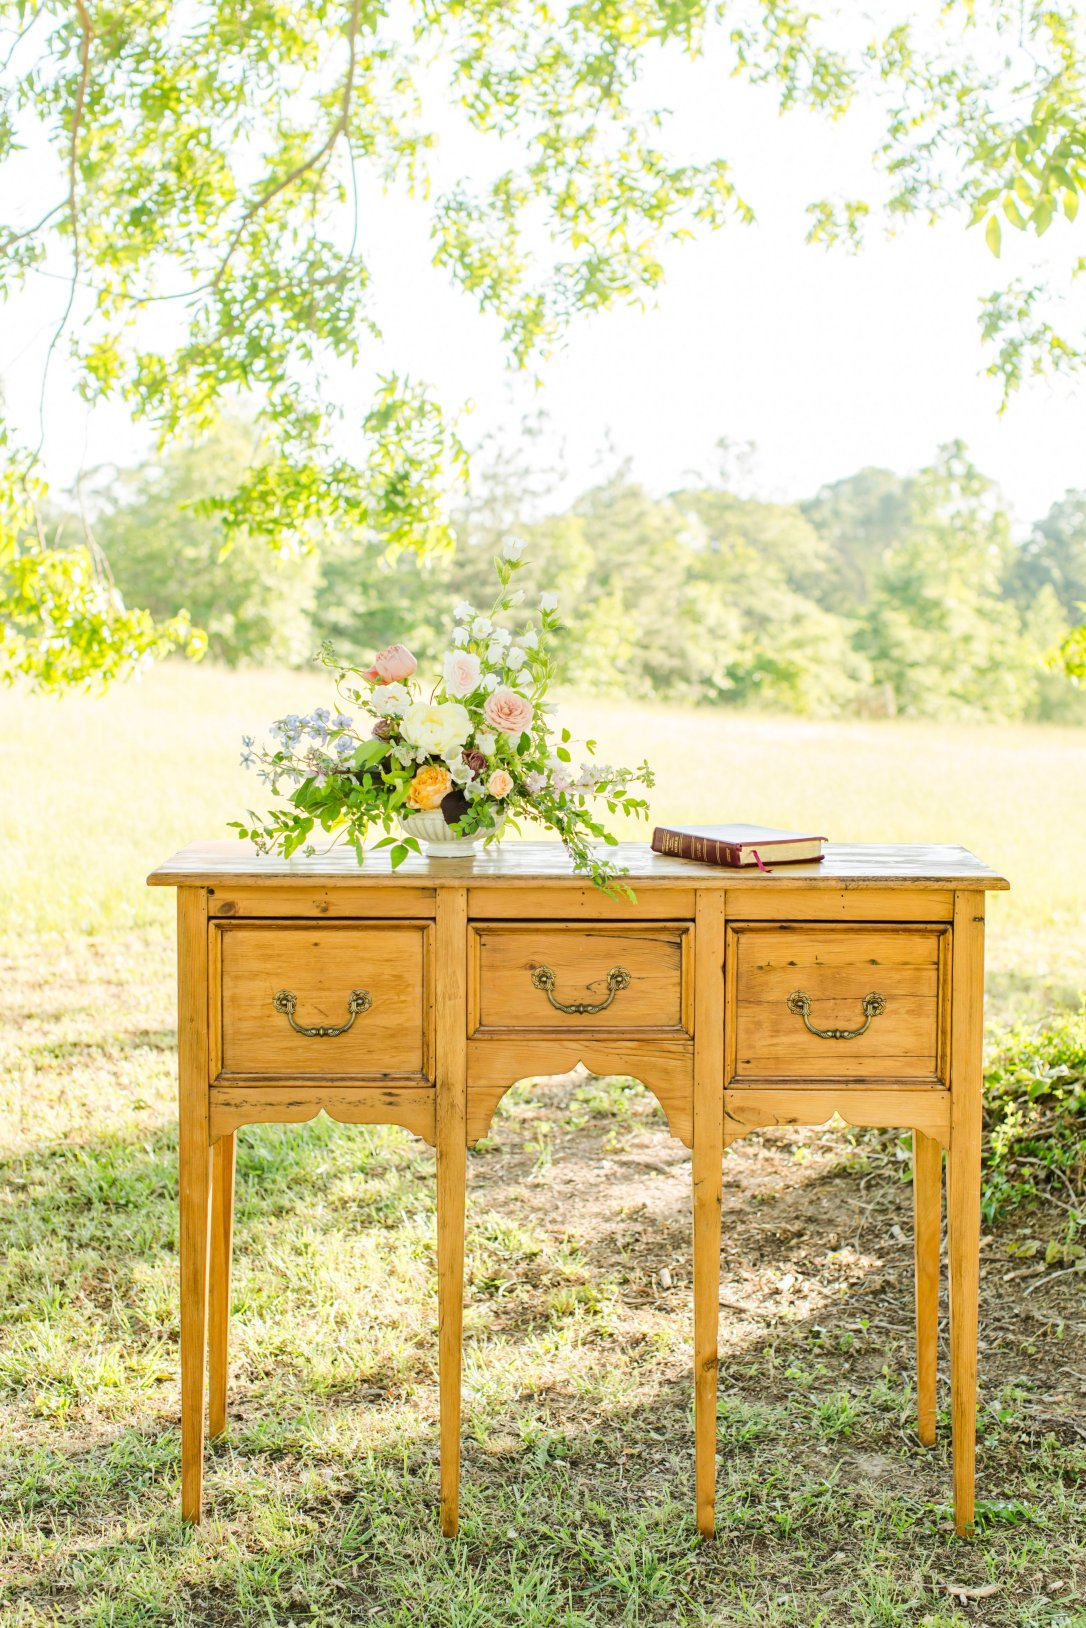 View More: http://abbywallerphotography.pass.us/styled-shoot-edited-images